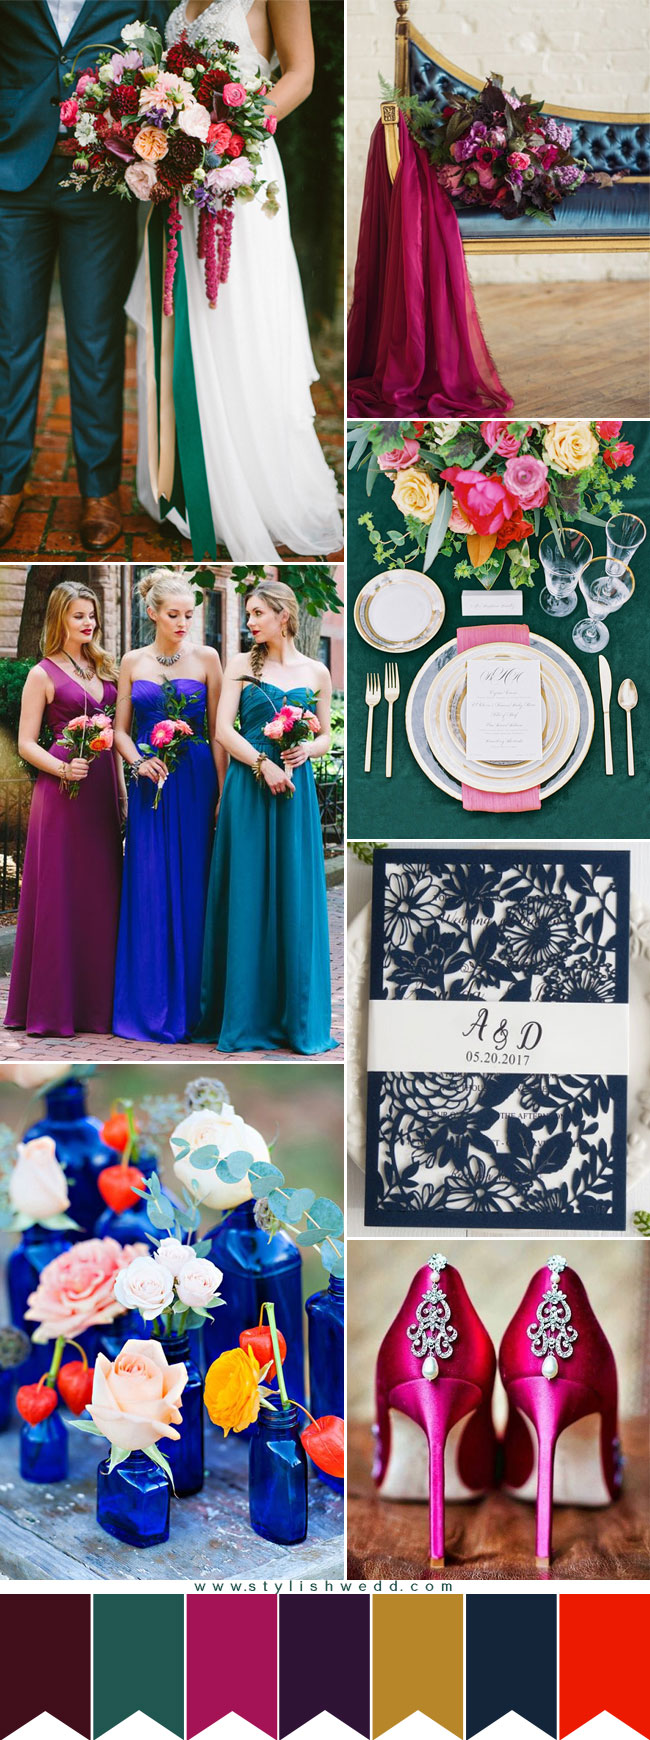 Moody Jewel-toned Wedding Color Palettes